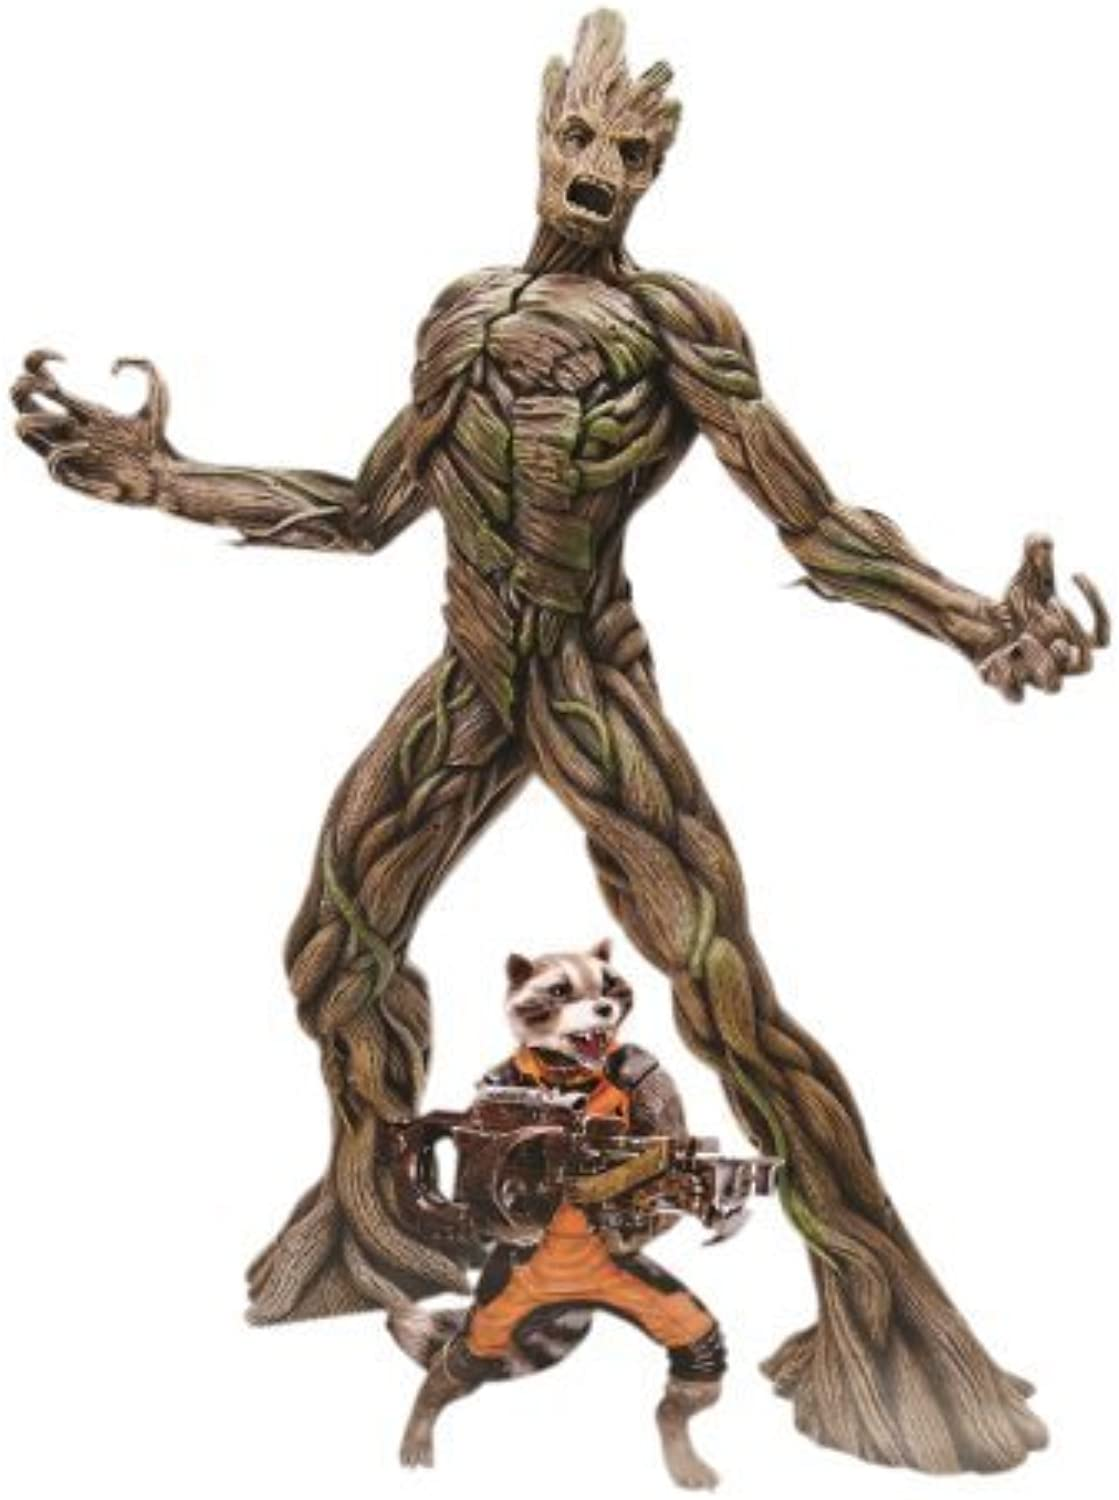 Dragon Models Guardians of The Galaxy - Groot with Rocket Raccoon Action Hero Vignette (1 9 Scale) by Dragon Models USA